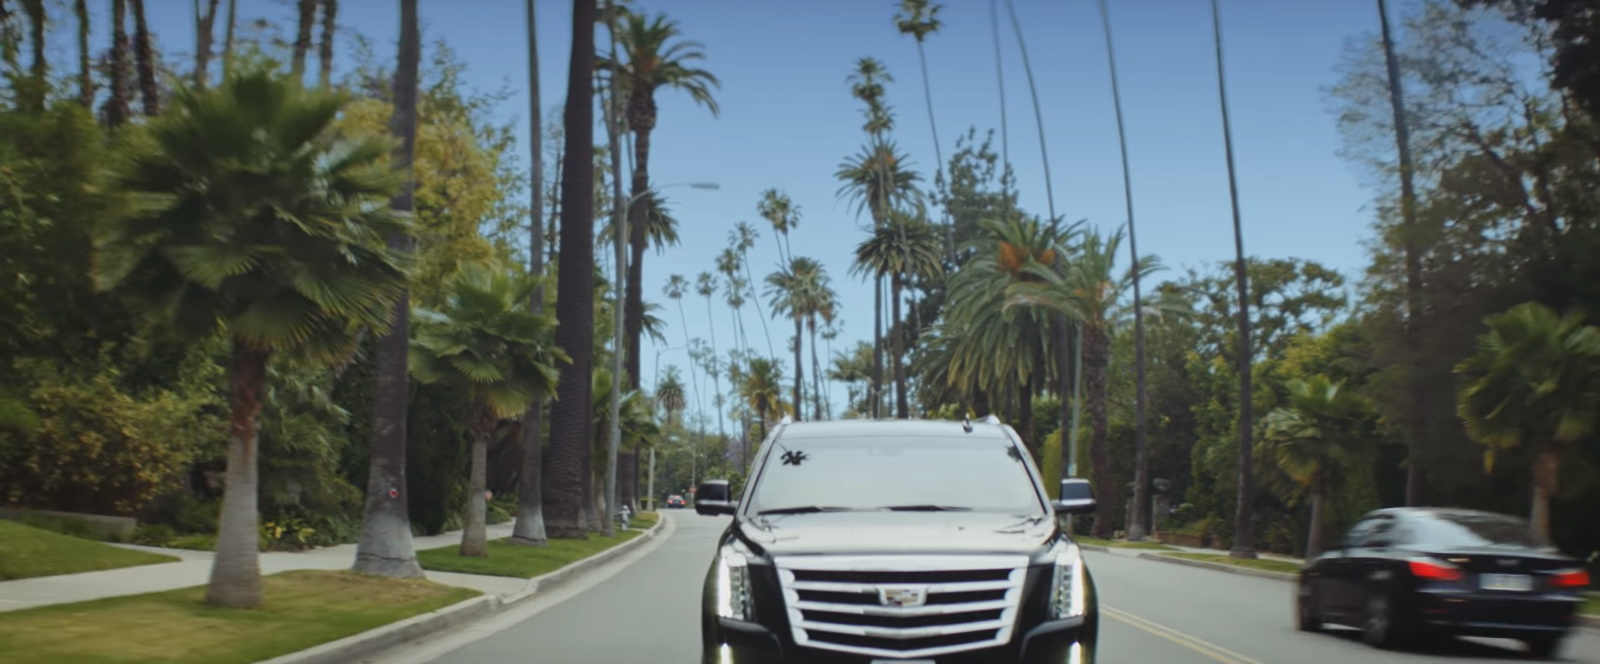 Cadillac Escalade - Major Lazer - Know No Better Official Music Video Product Placement